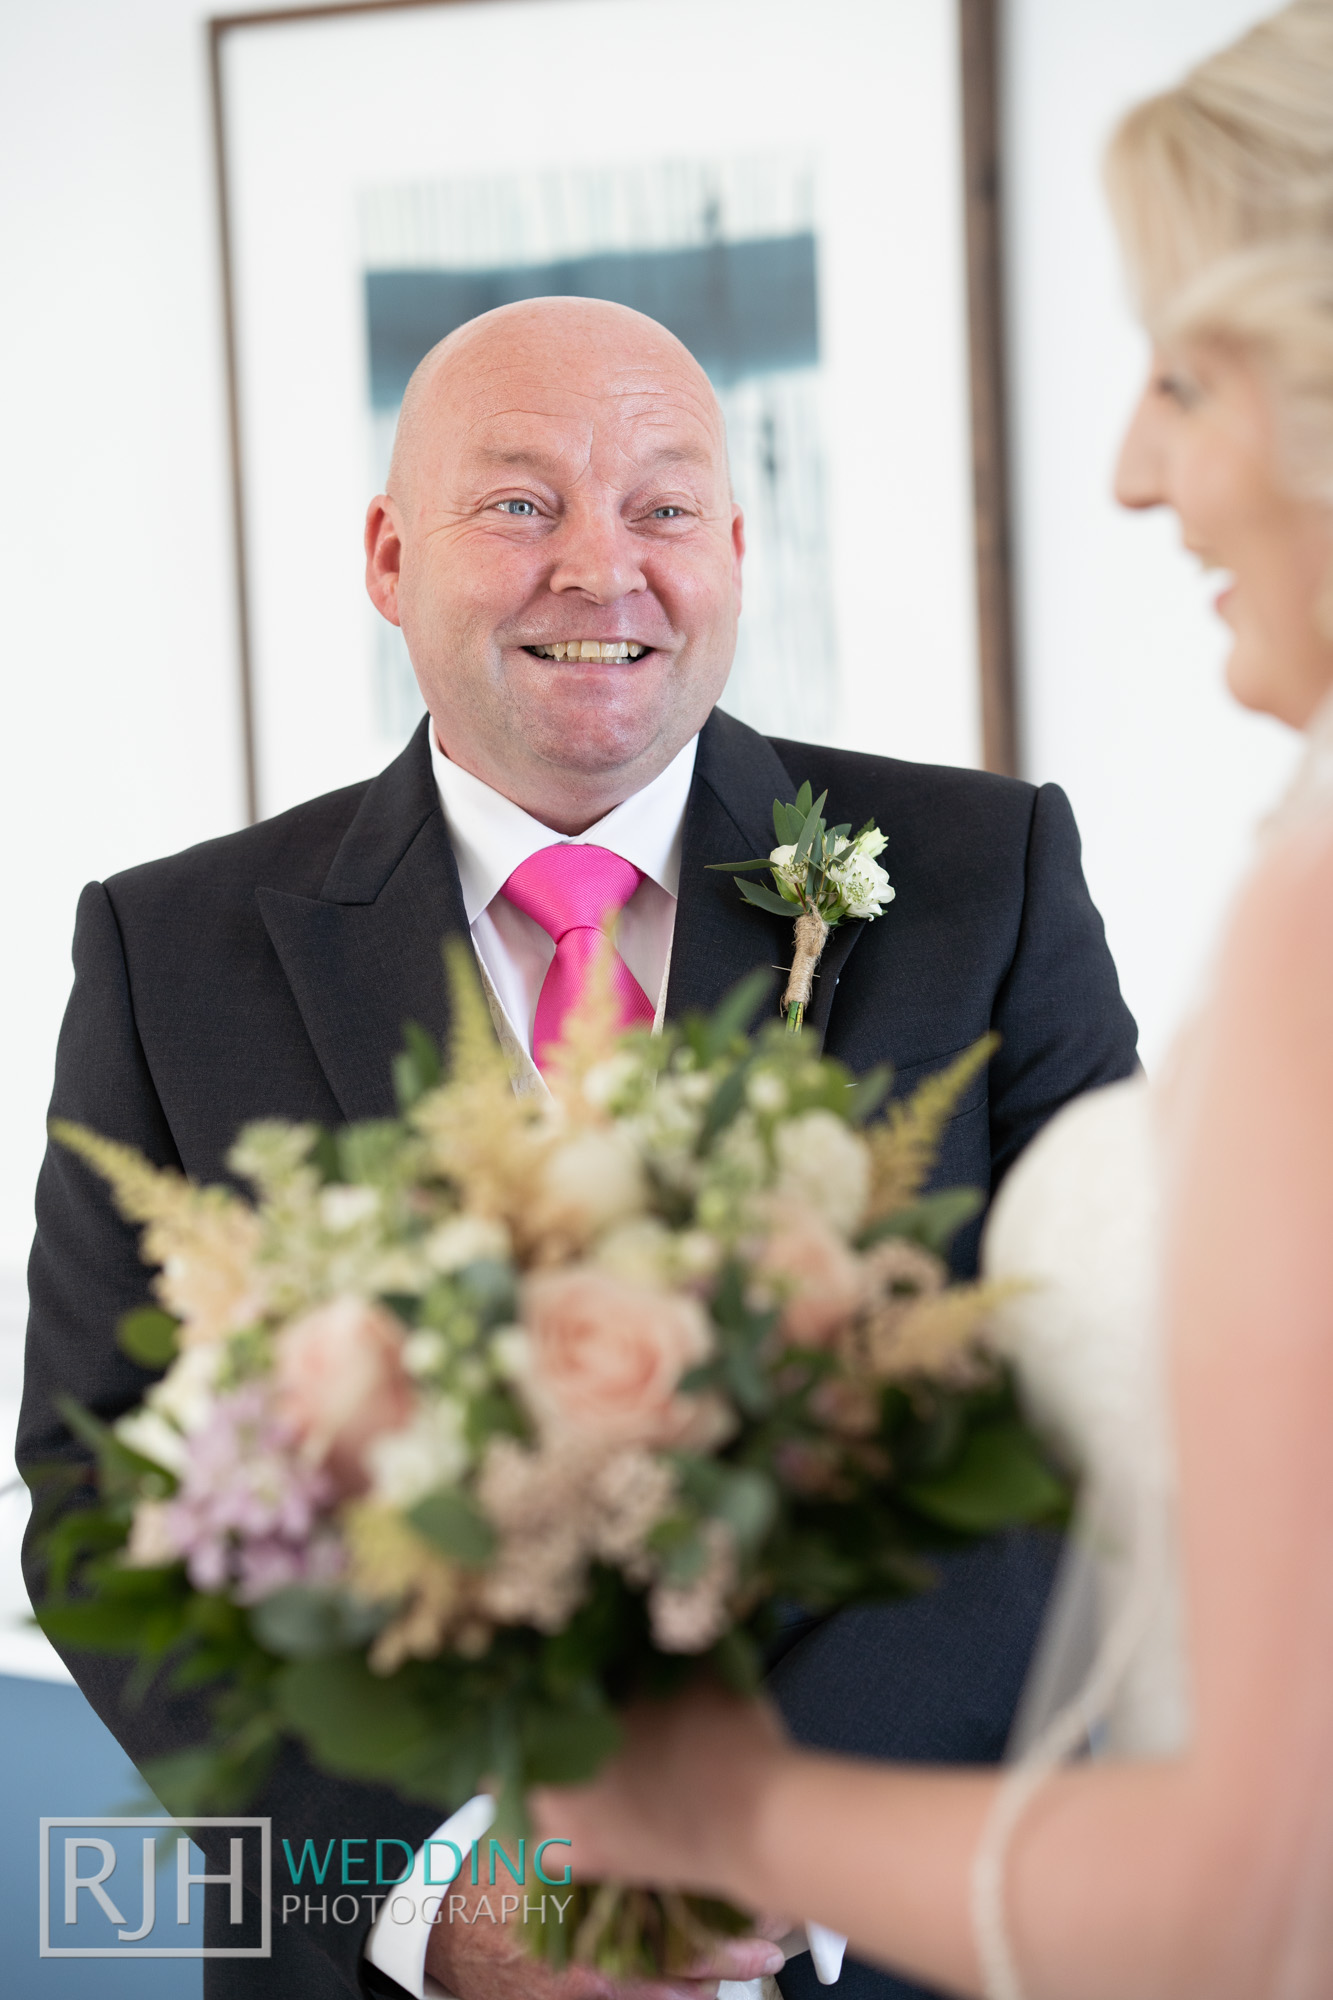 Aston Hall Wedding Photography - Whitby Wedding Preview_017_DSB09410.jpg